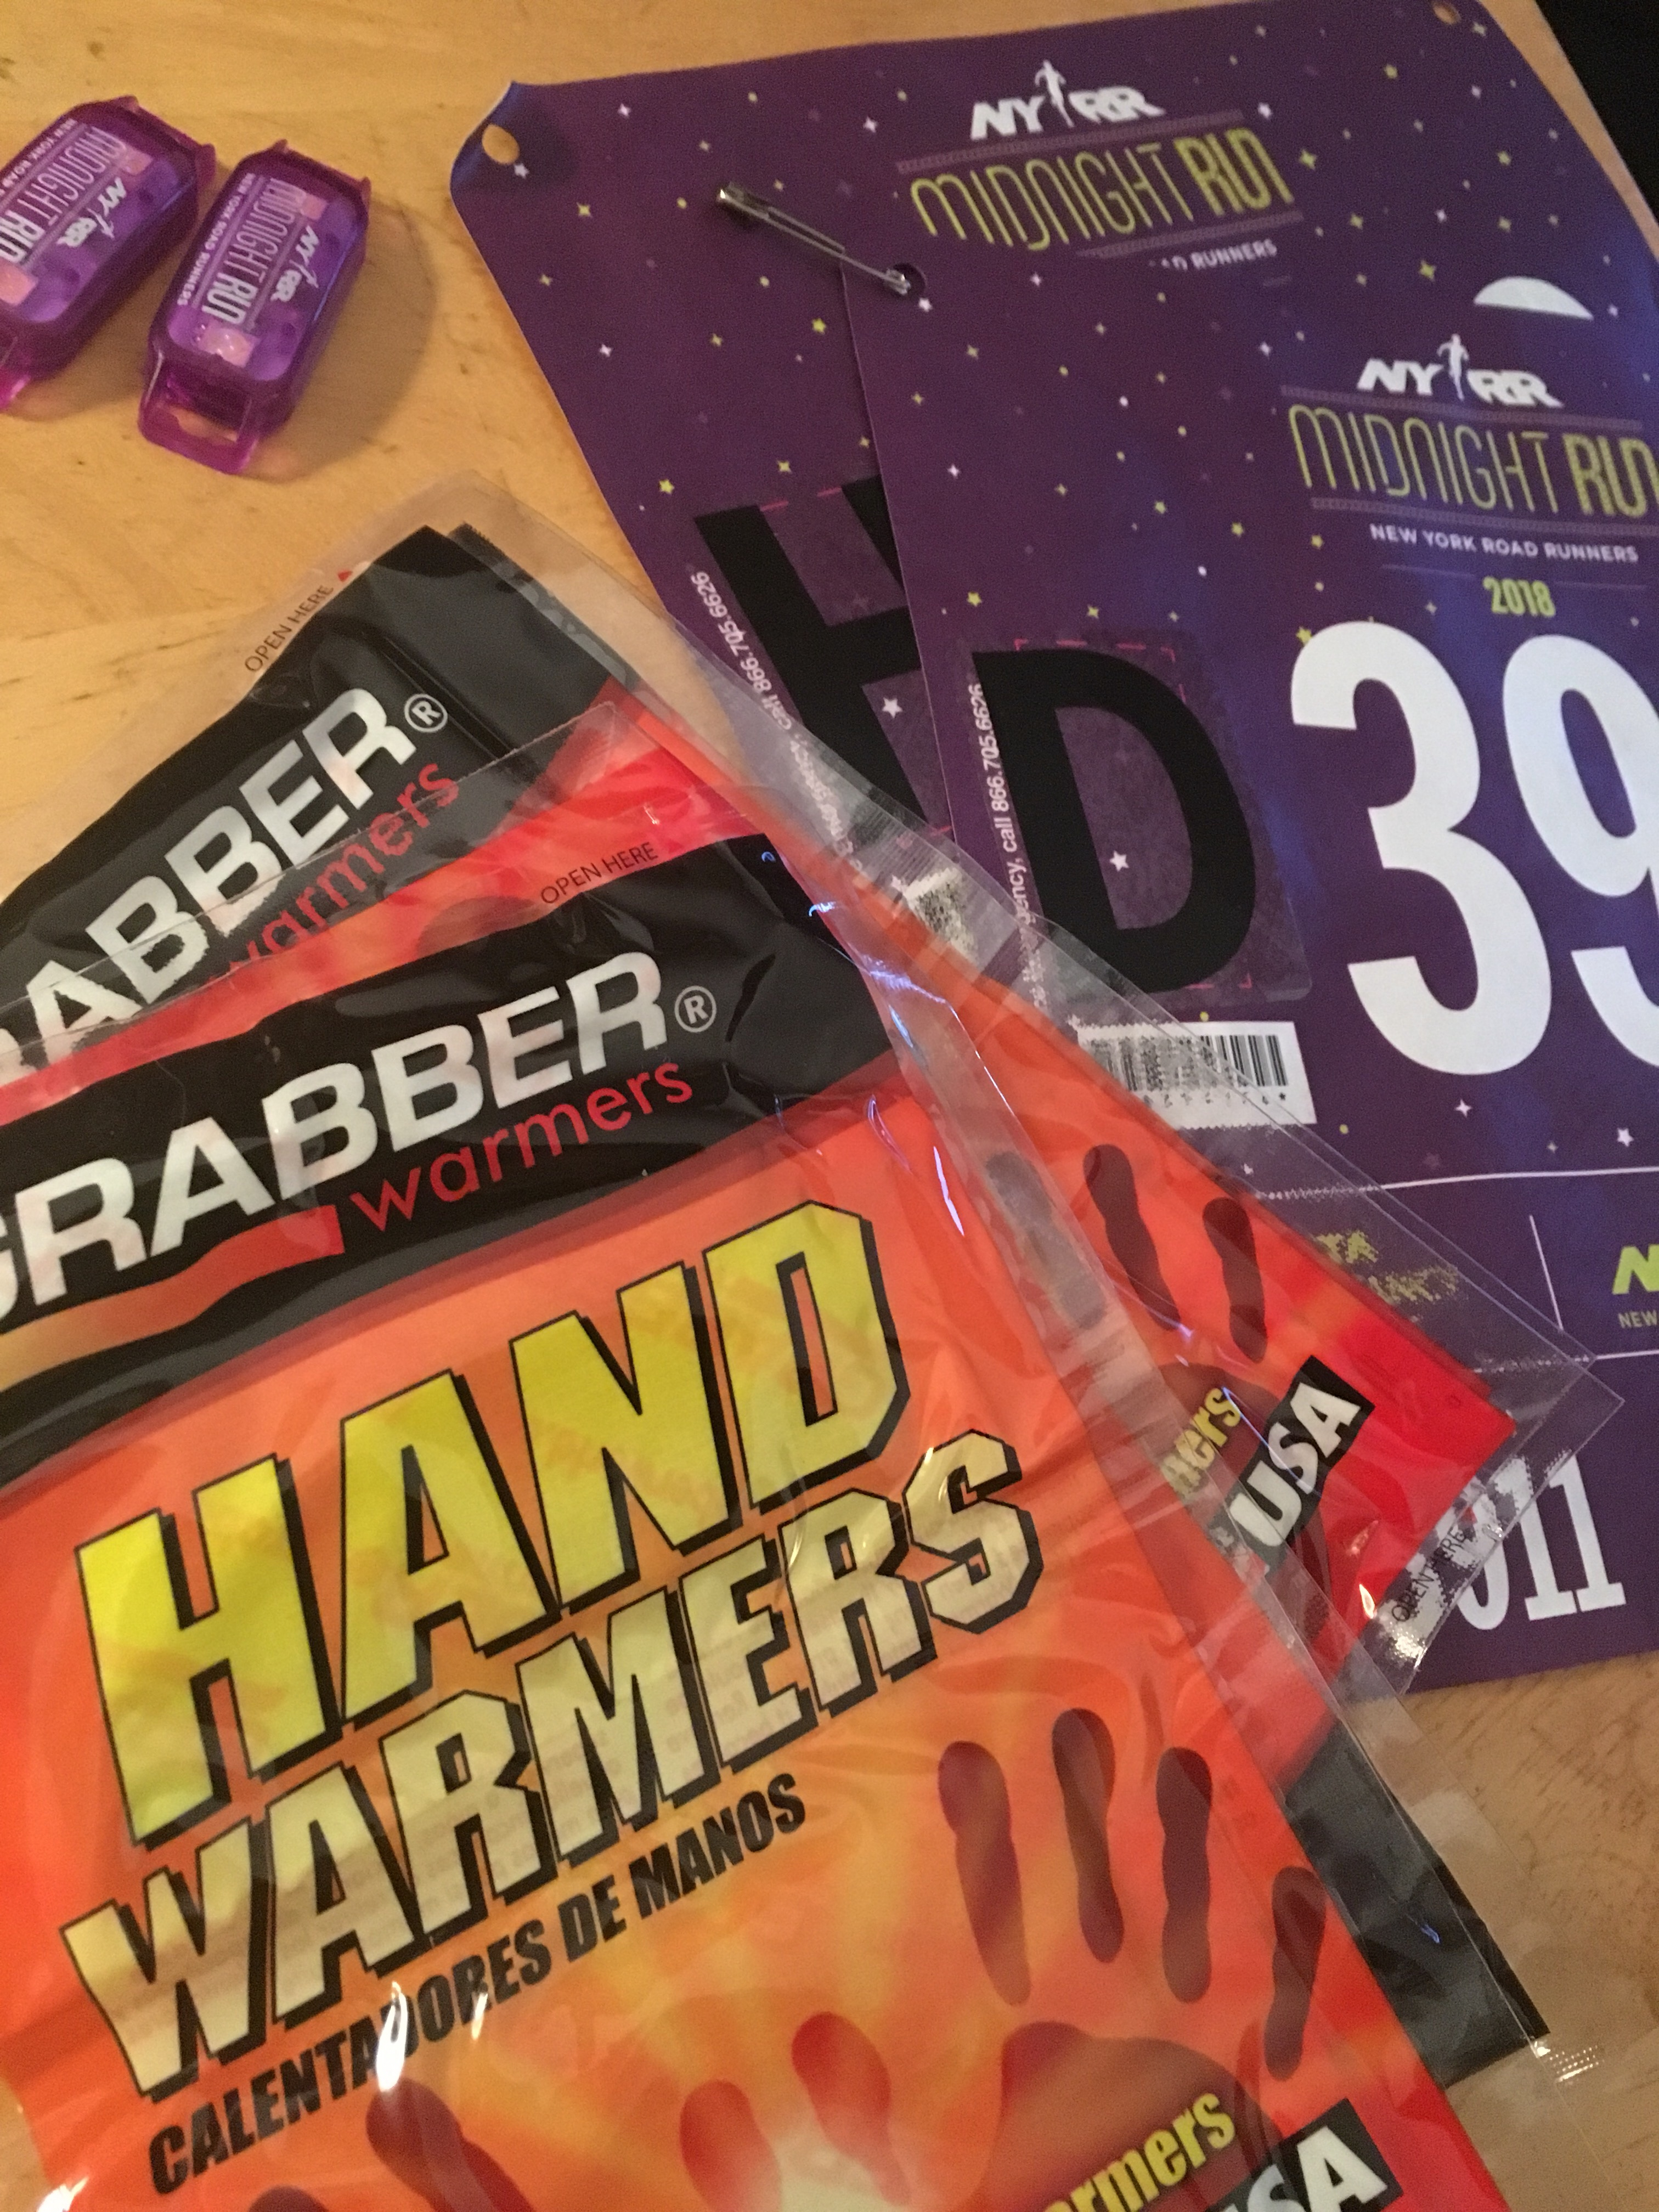 NYRR Midnight Run Bibs, lights, and handwarmers for Central Park cold race